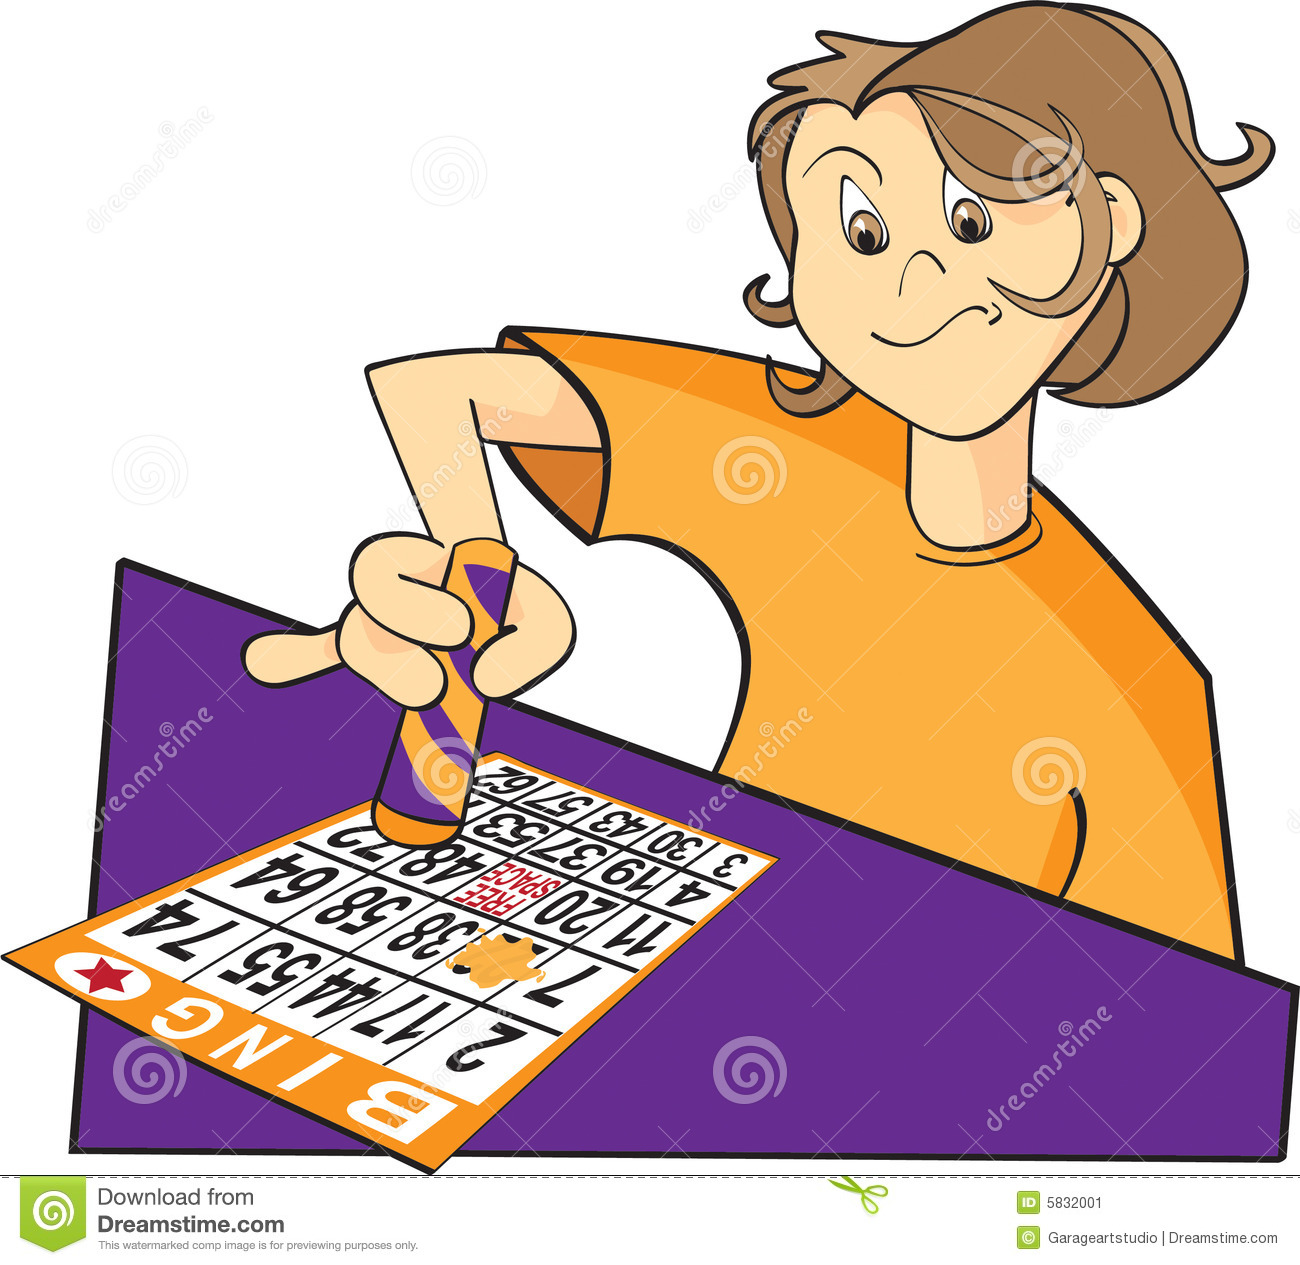 Illustration Of A Person Playing Bingo Dabbing The Bingo Card